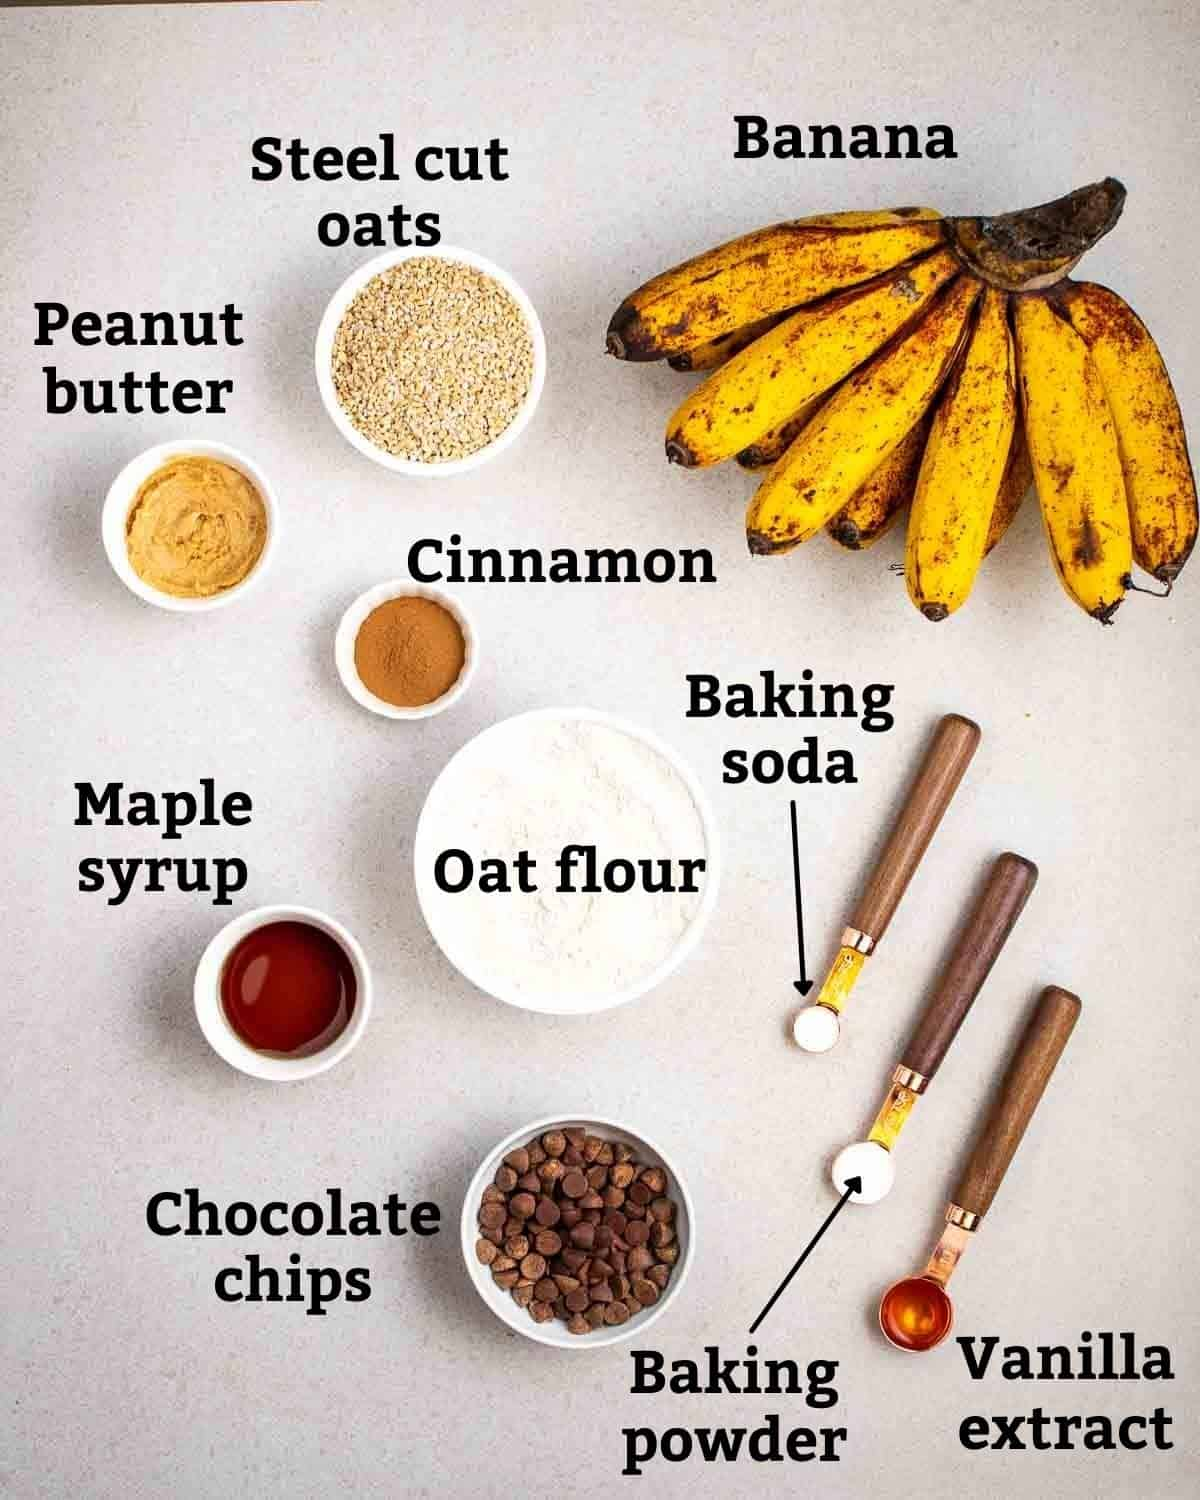 Ingredients needed like steel cut oats, oat flour, banana and peanut butter on a grey background.